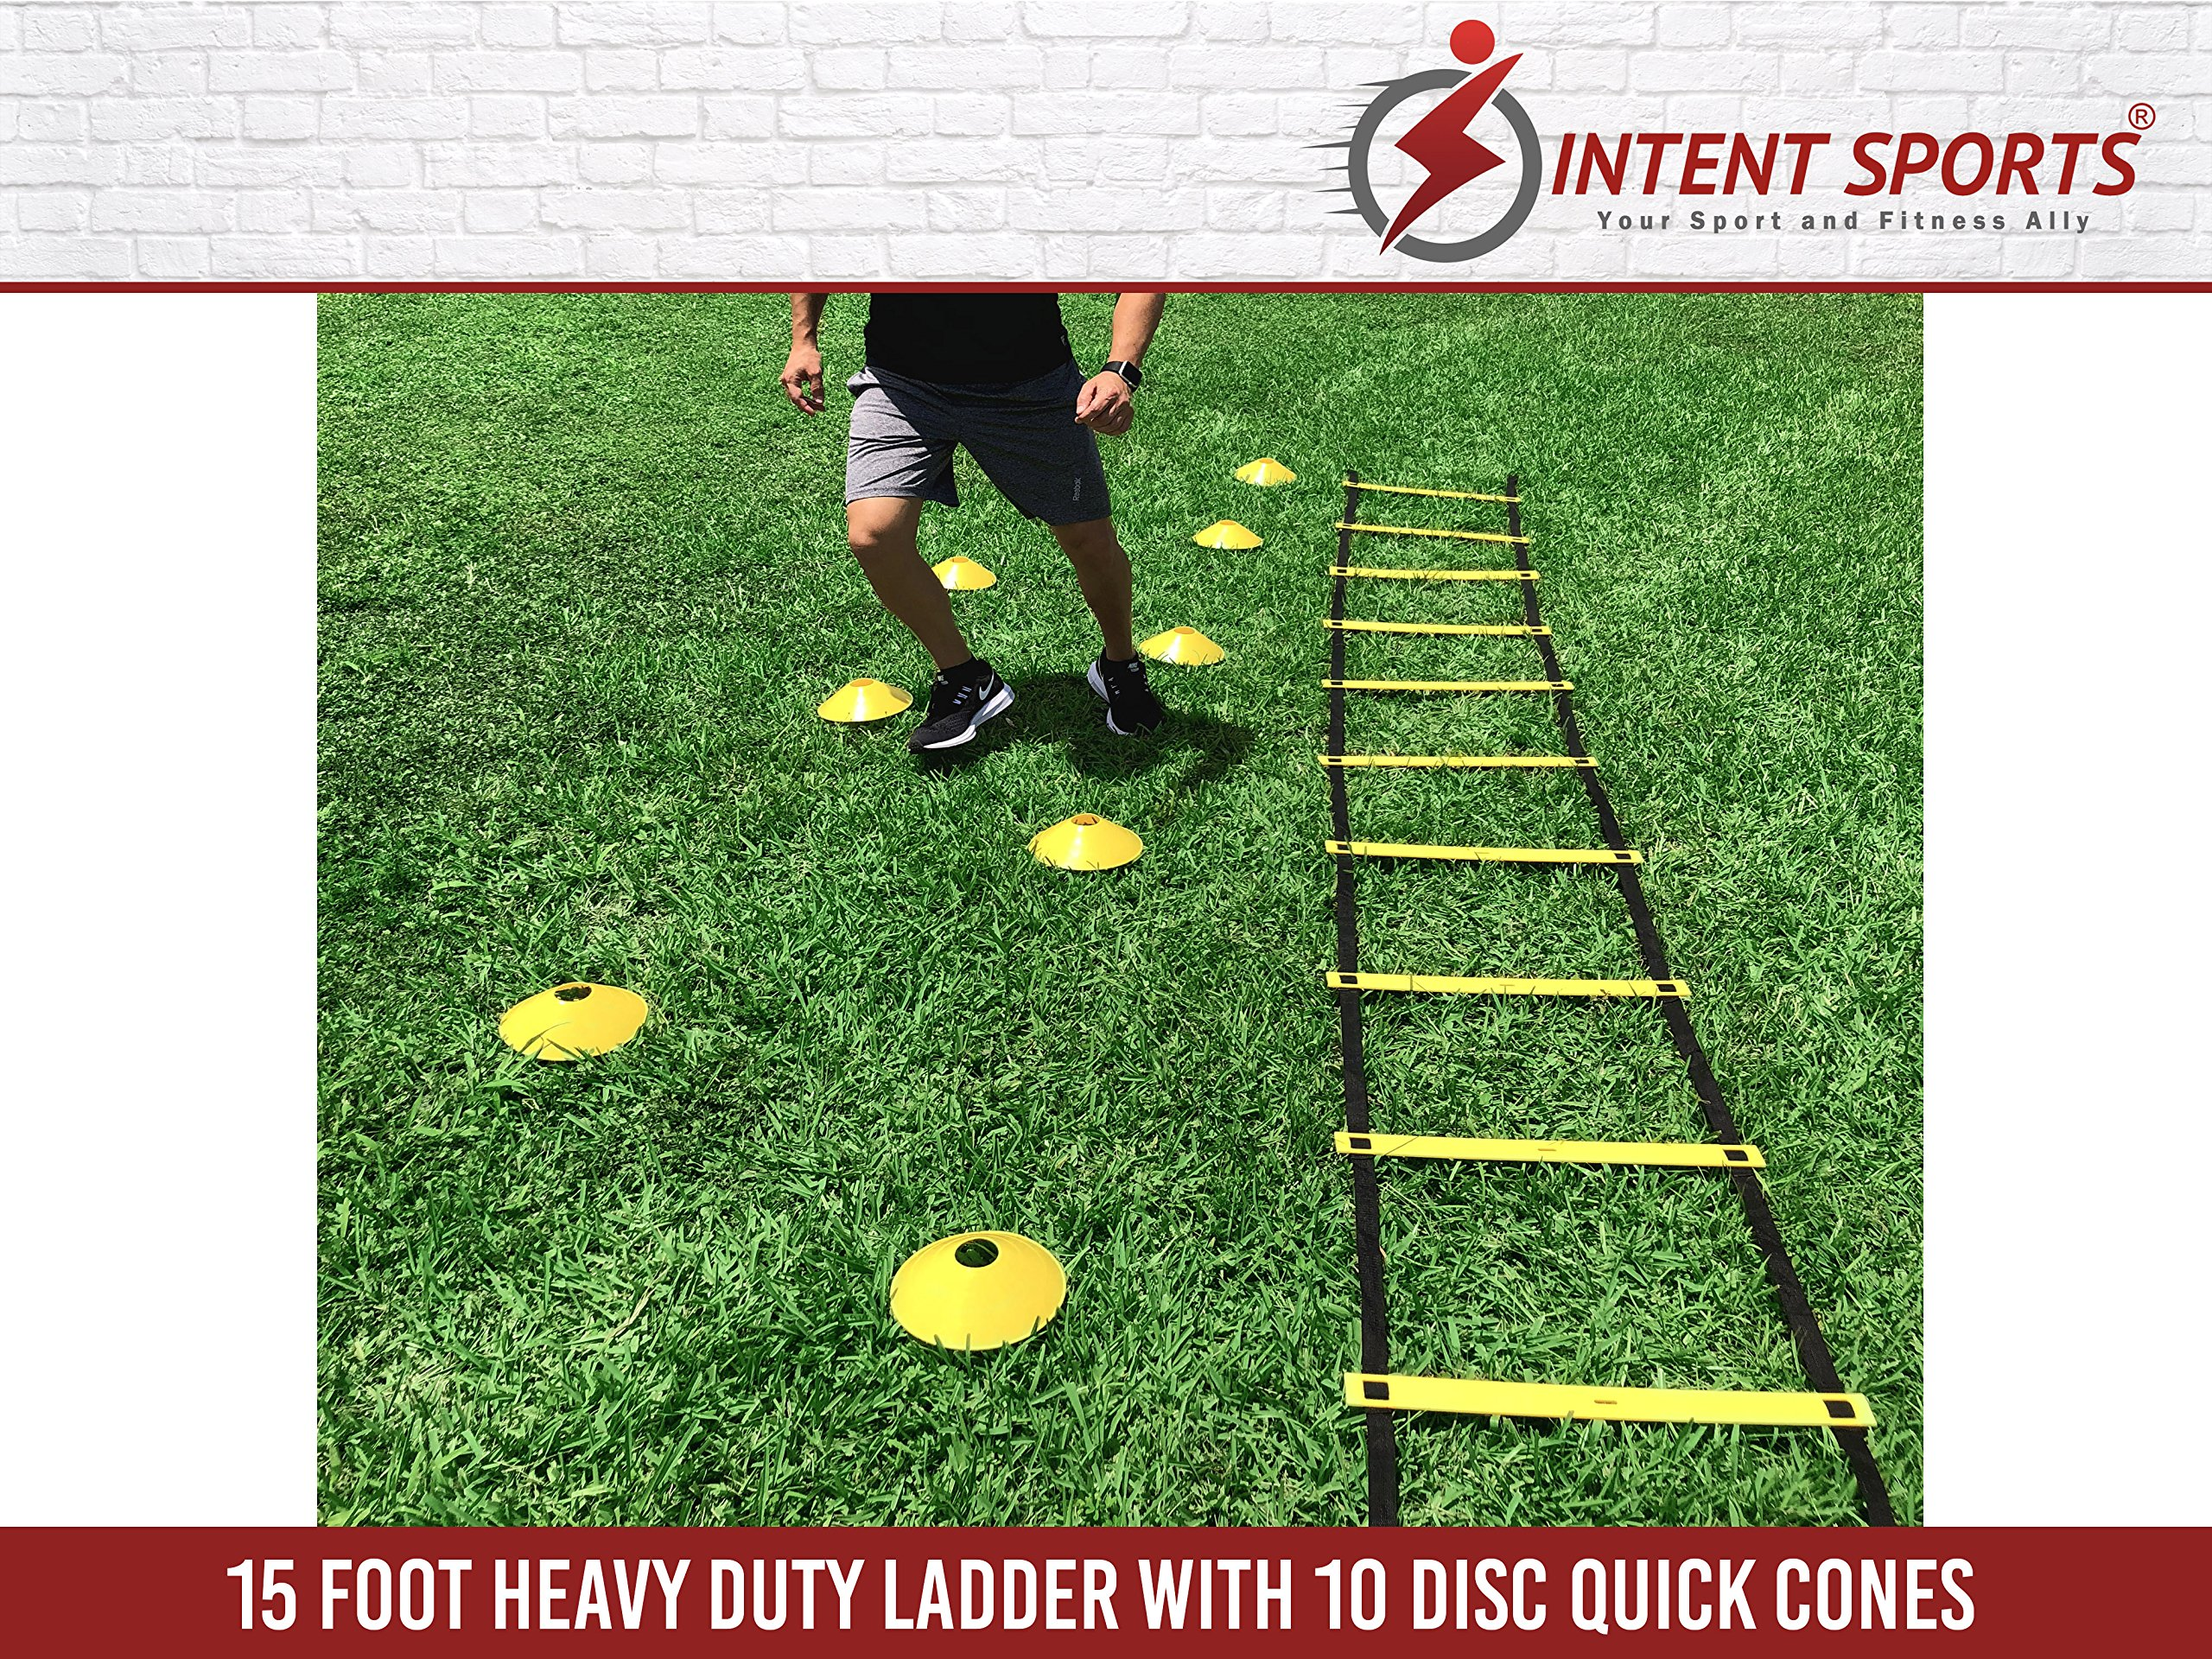 Agility Ladder Speed Training Equipment Workout Basketball Football and 10 Cones